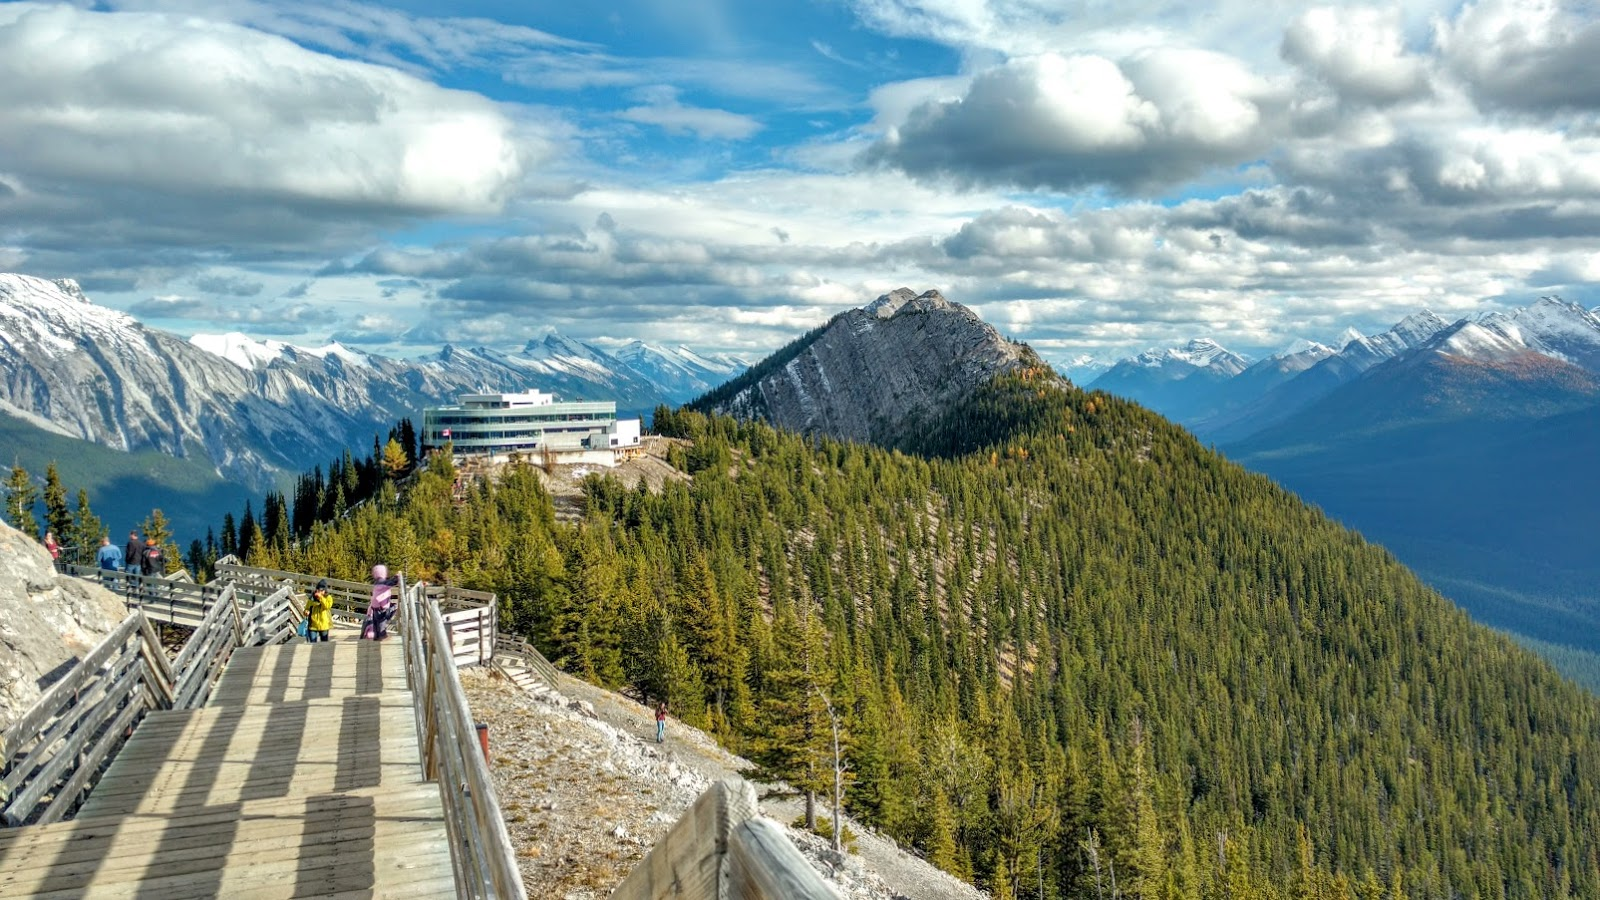 Sulphur Mountain Interpretive Boardwalk, Banff